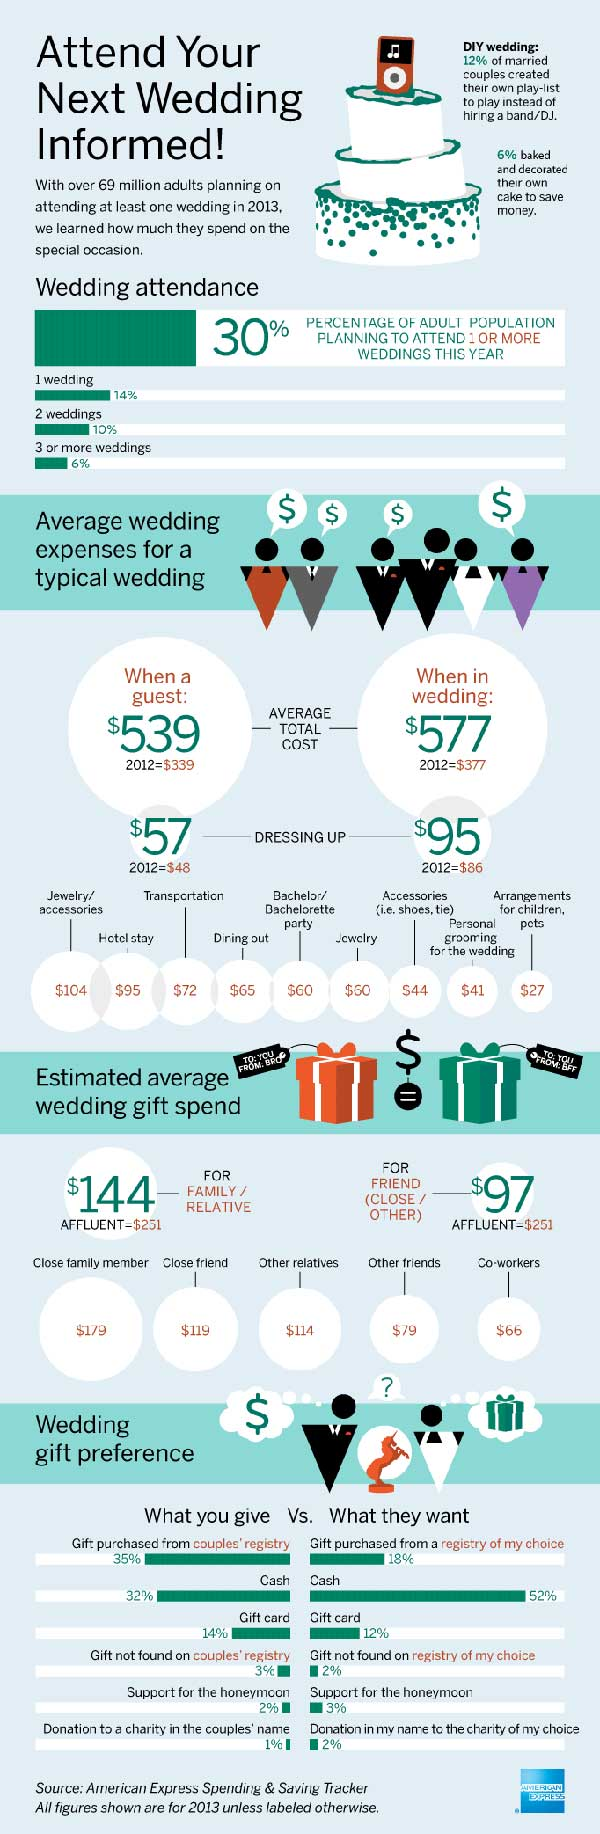 Average Cost of Attending a Wedding (infographic).